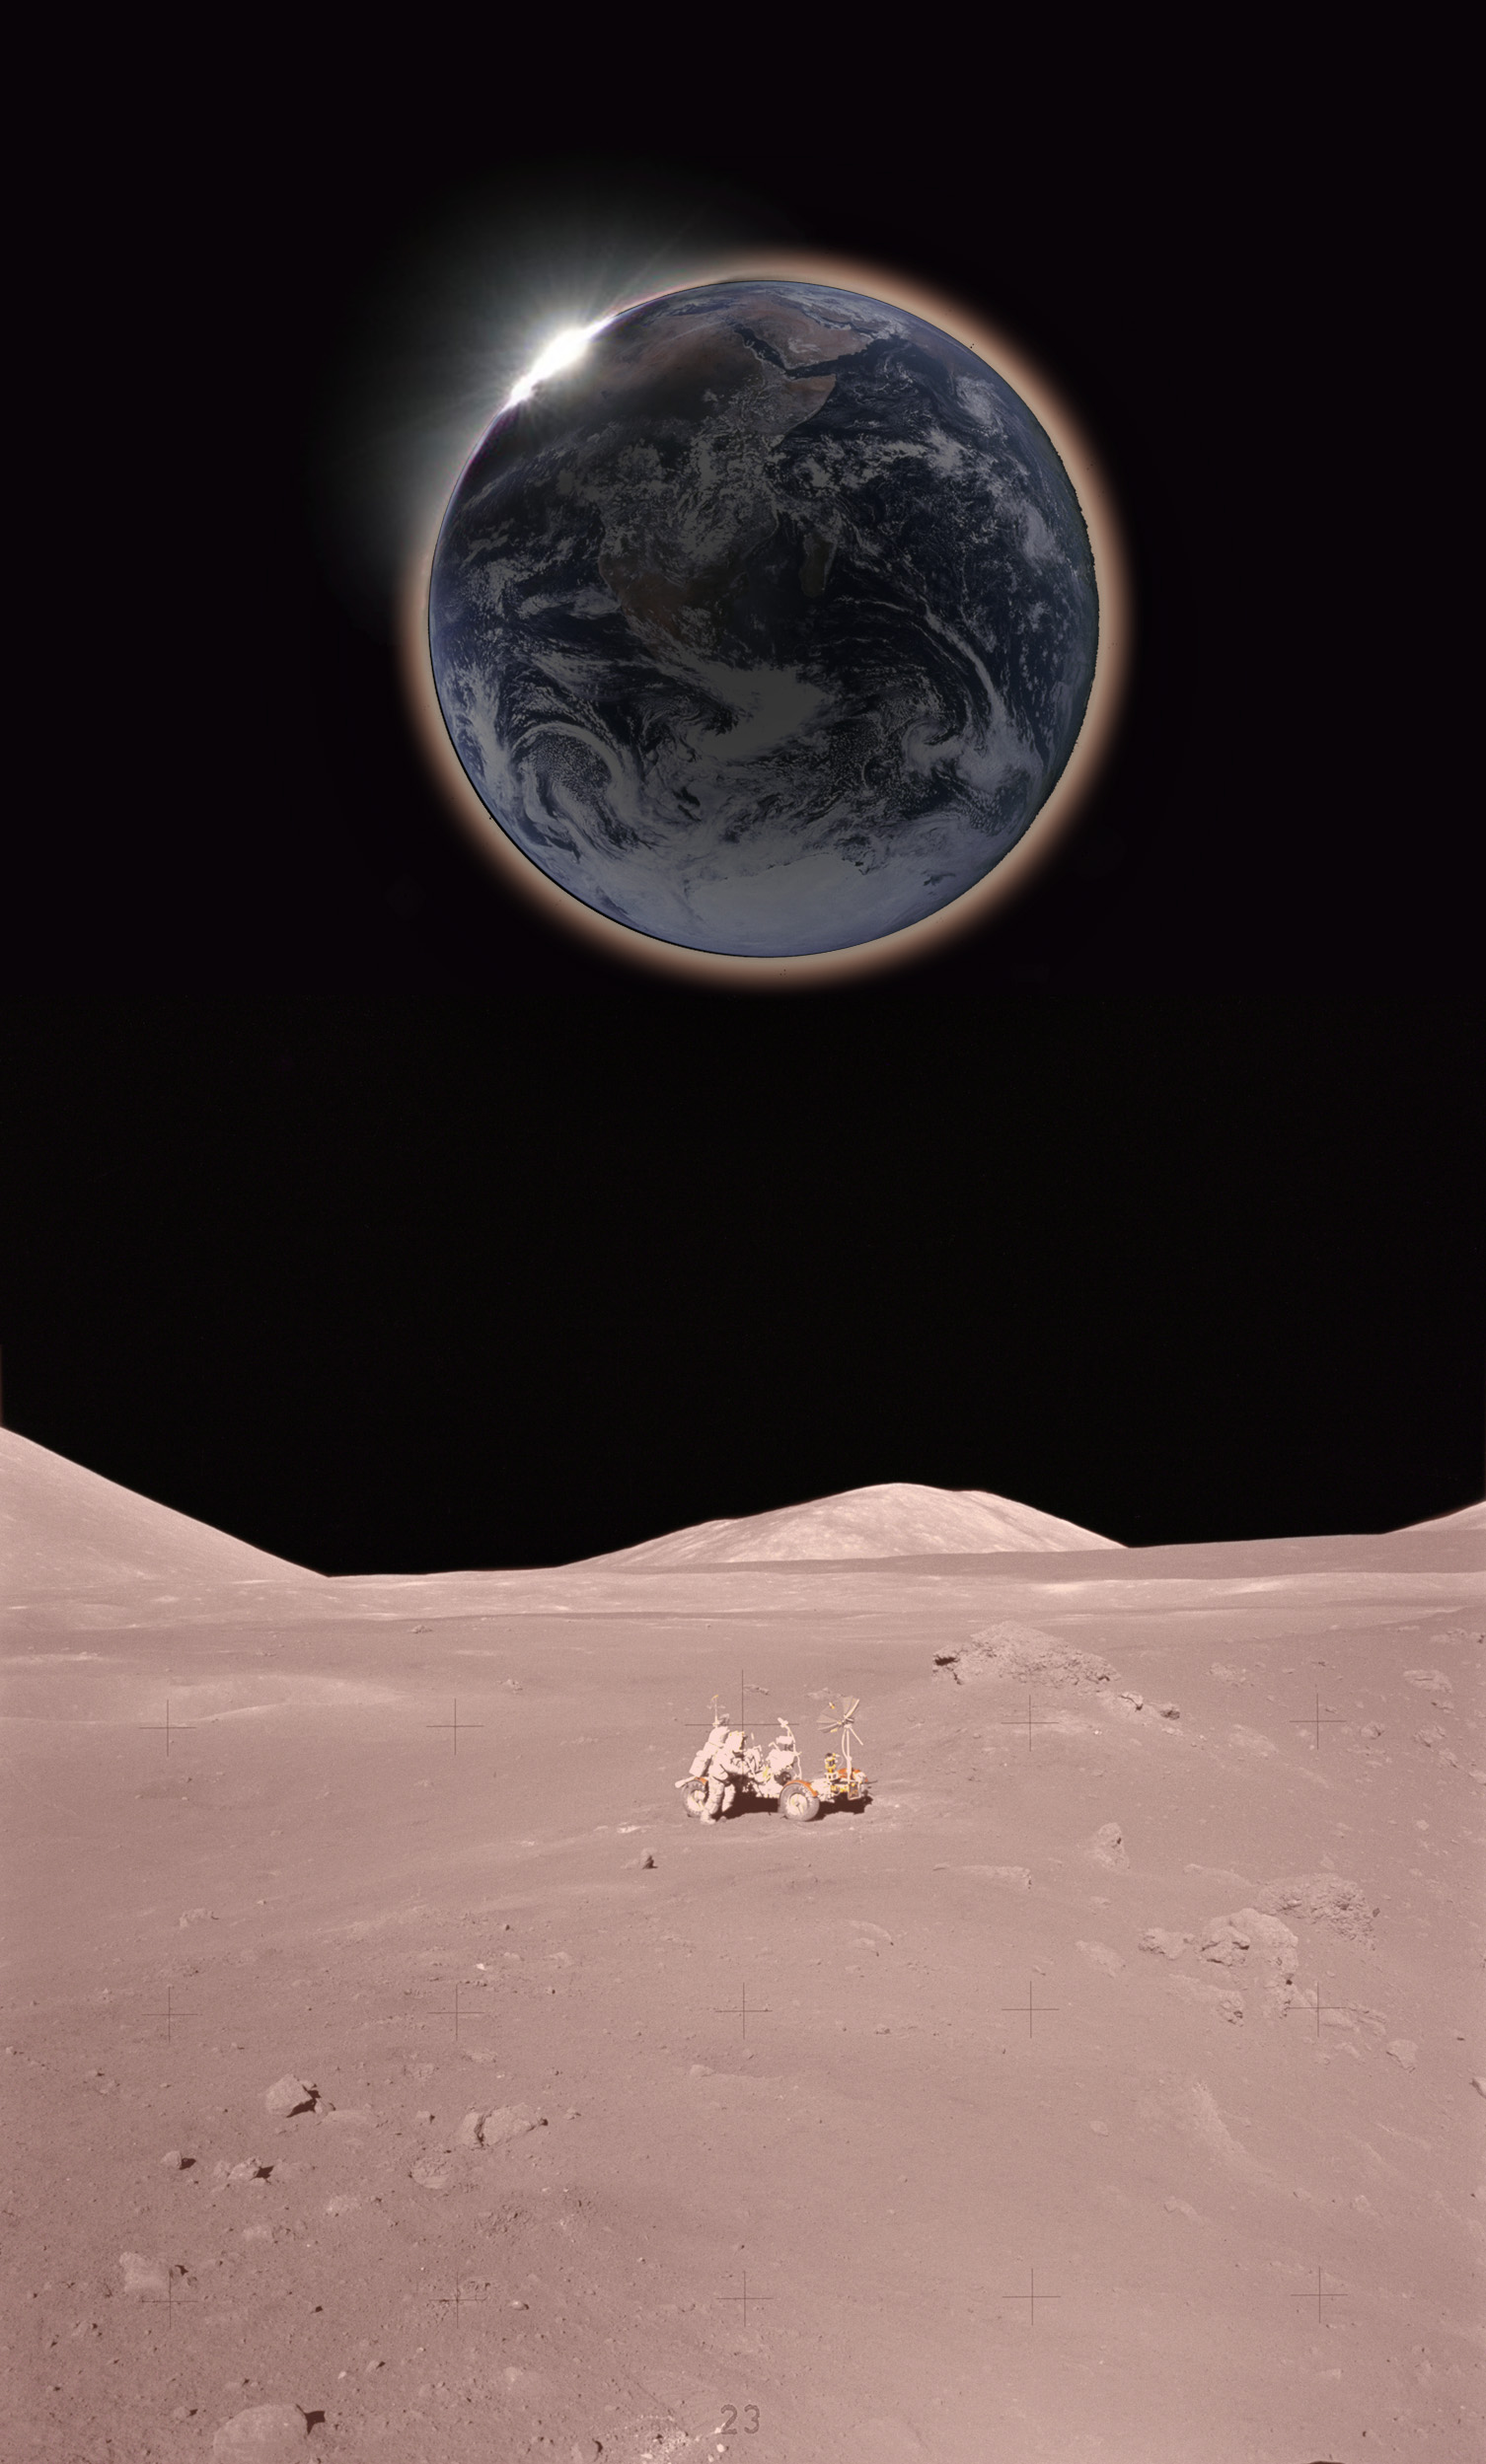 earth from the moon nasa - photo #31